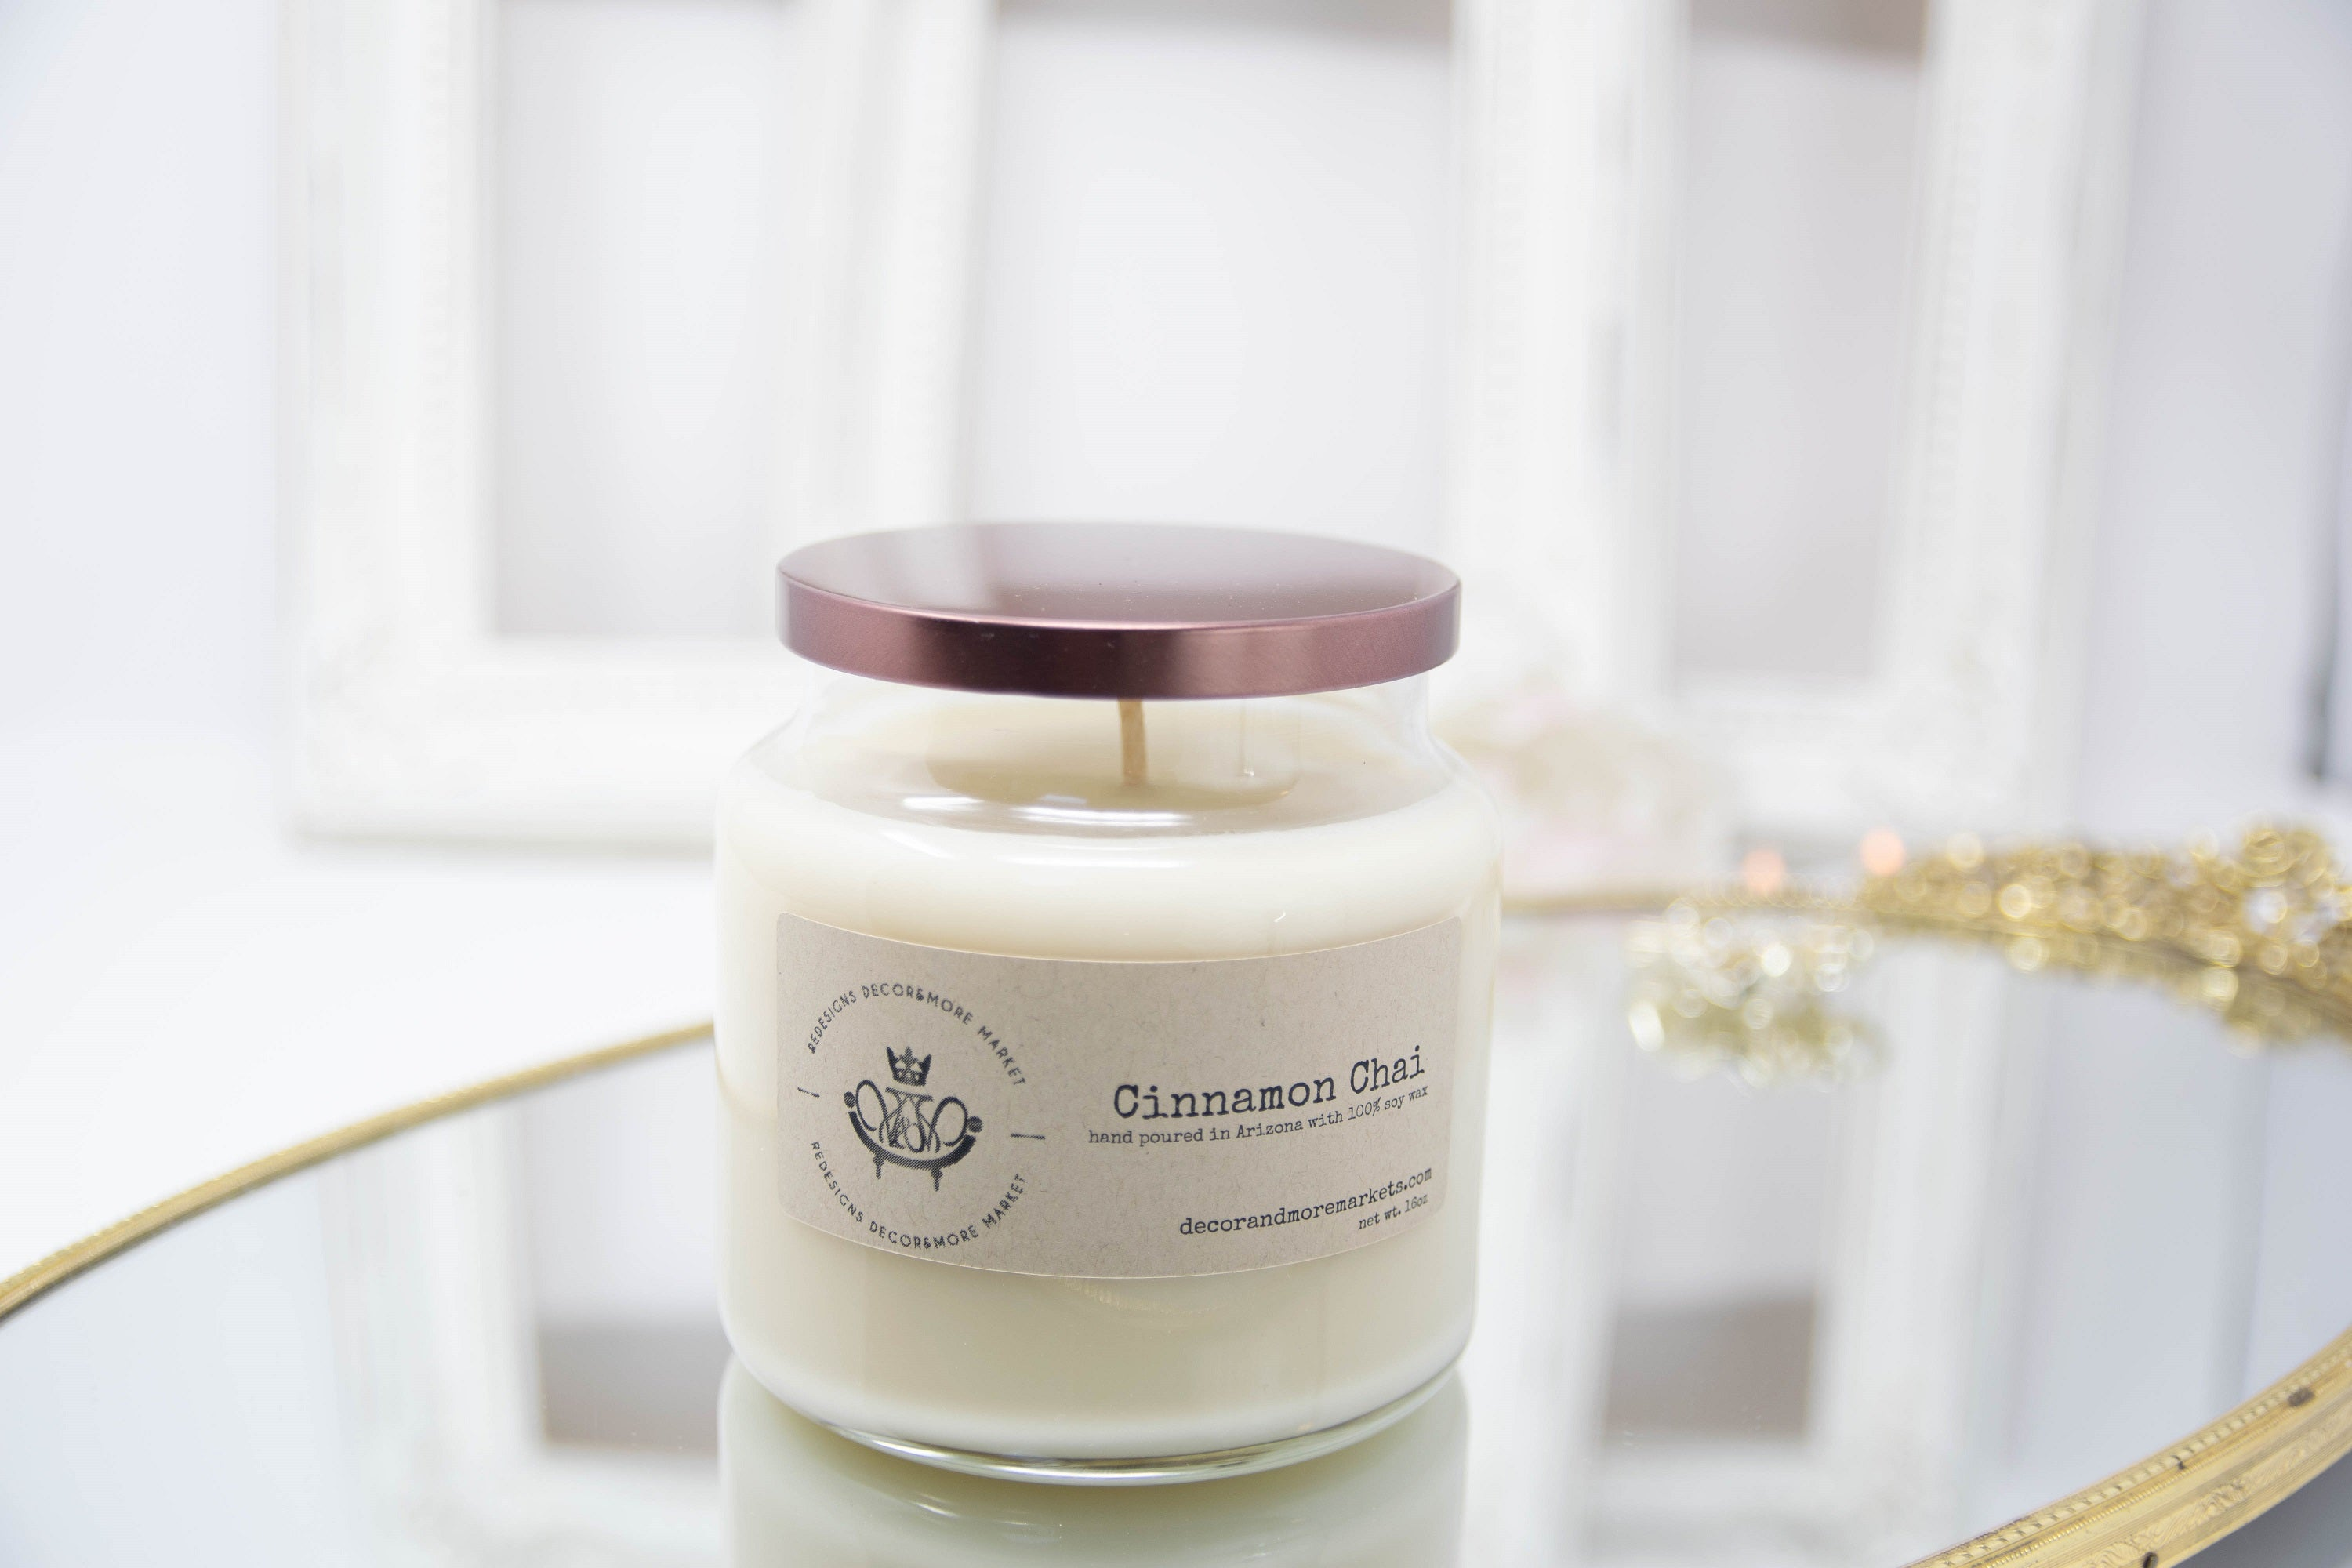 Cinnamon Chai candle, scented candle, fall candle, fall scent, soy candle, fall decor